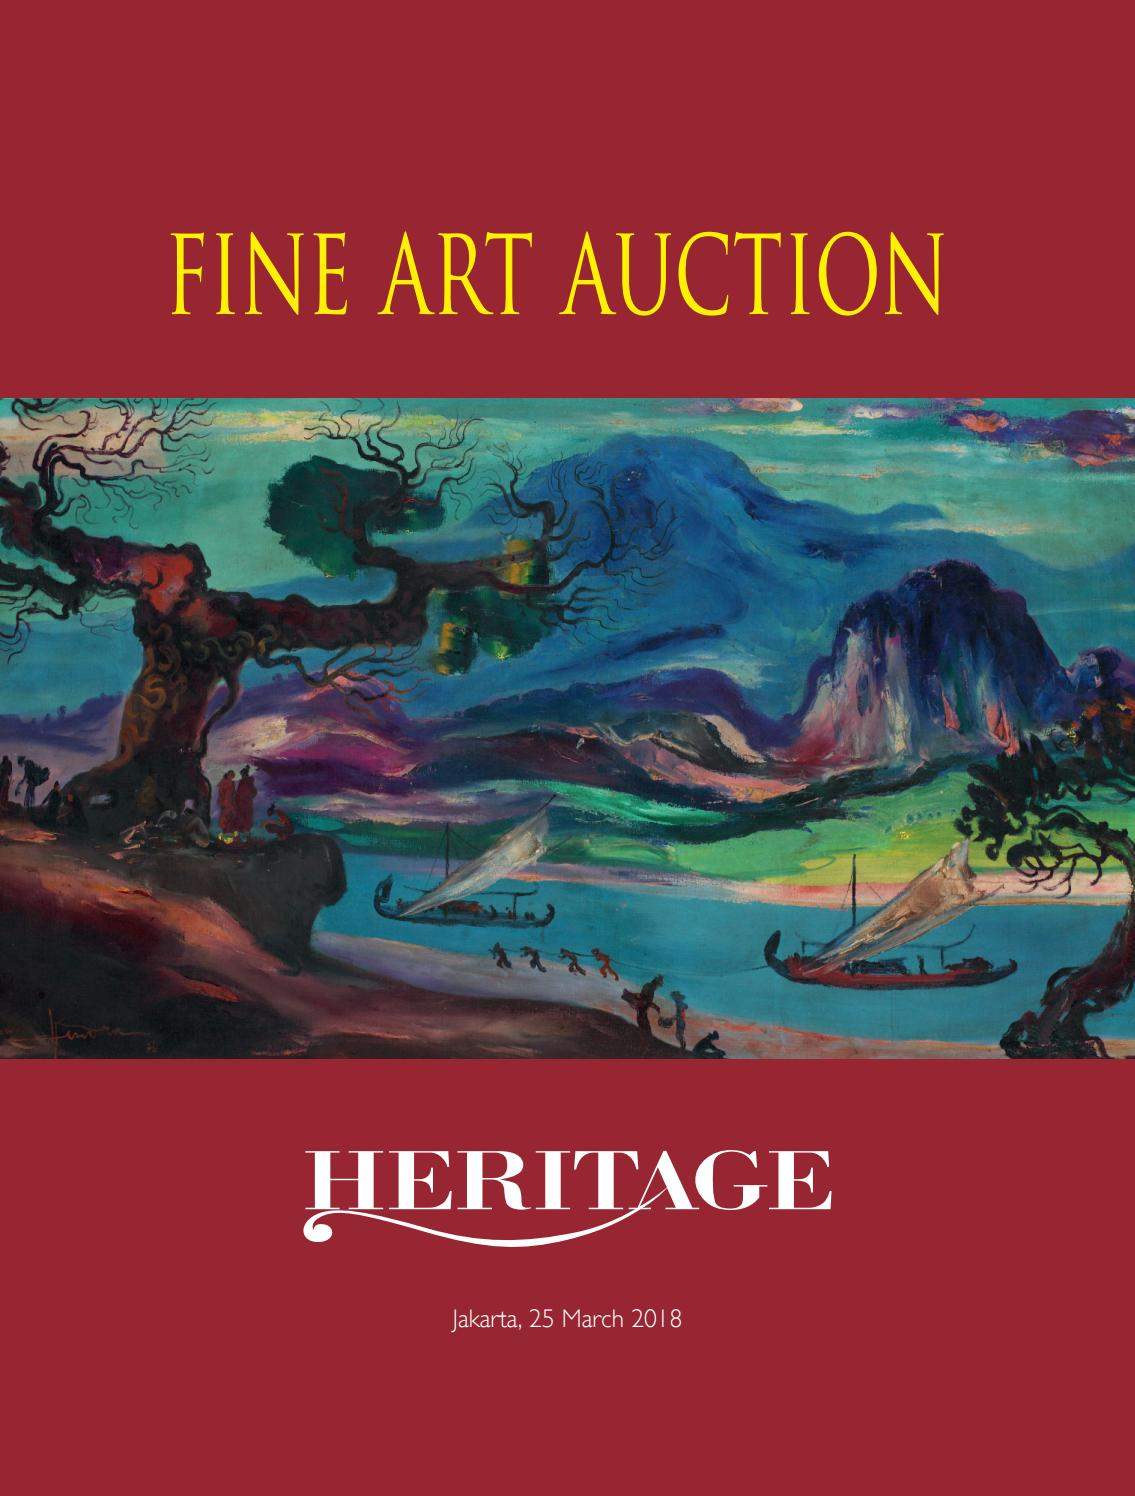 Heritage Fine Art Auction By Masterpiece Auction House Indonesia